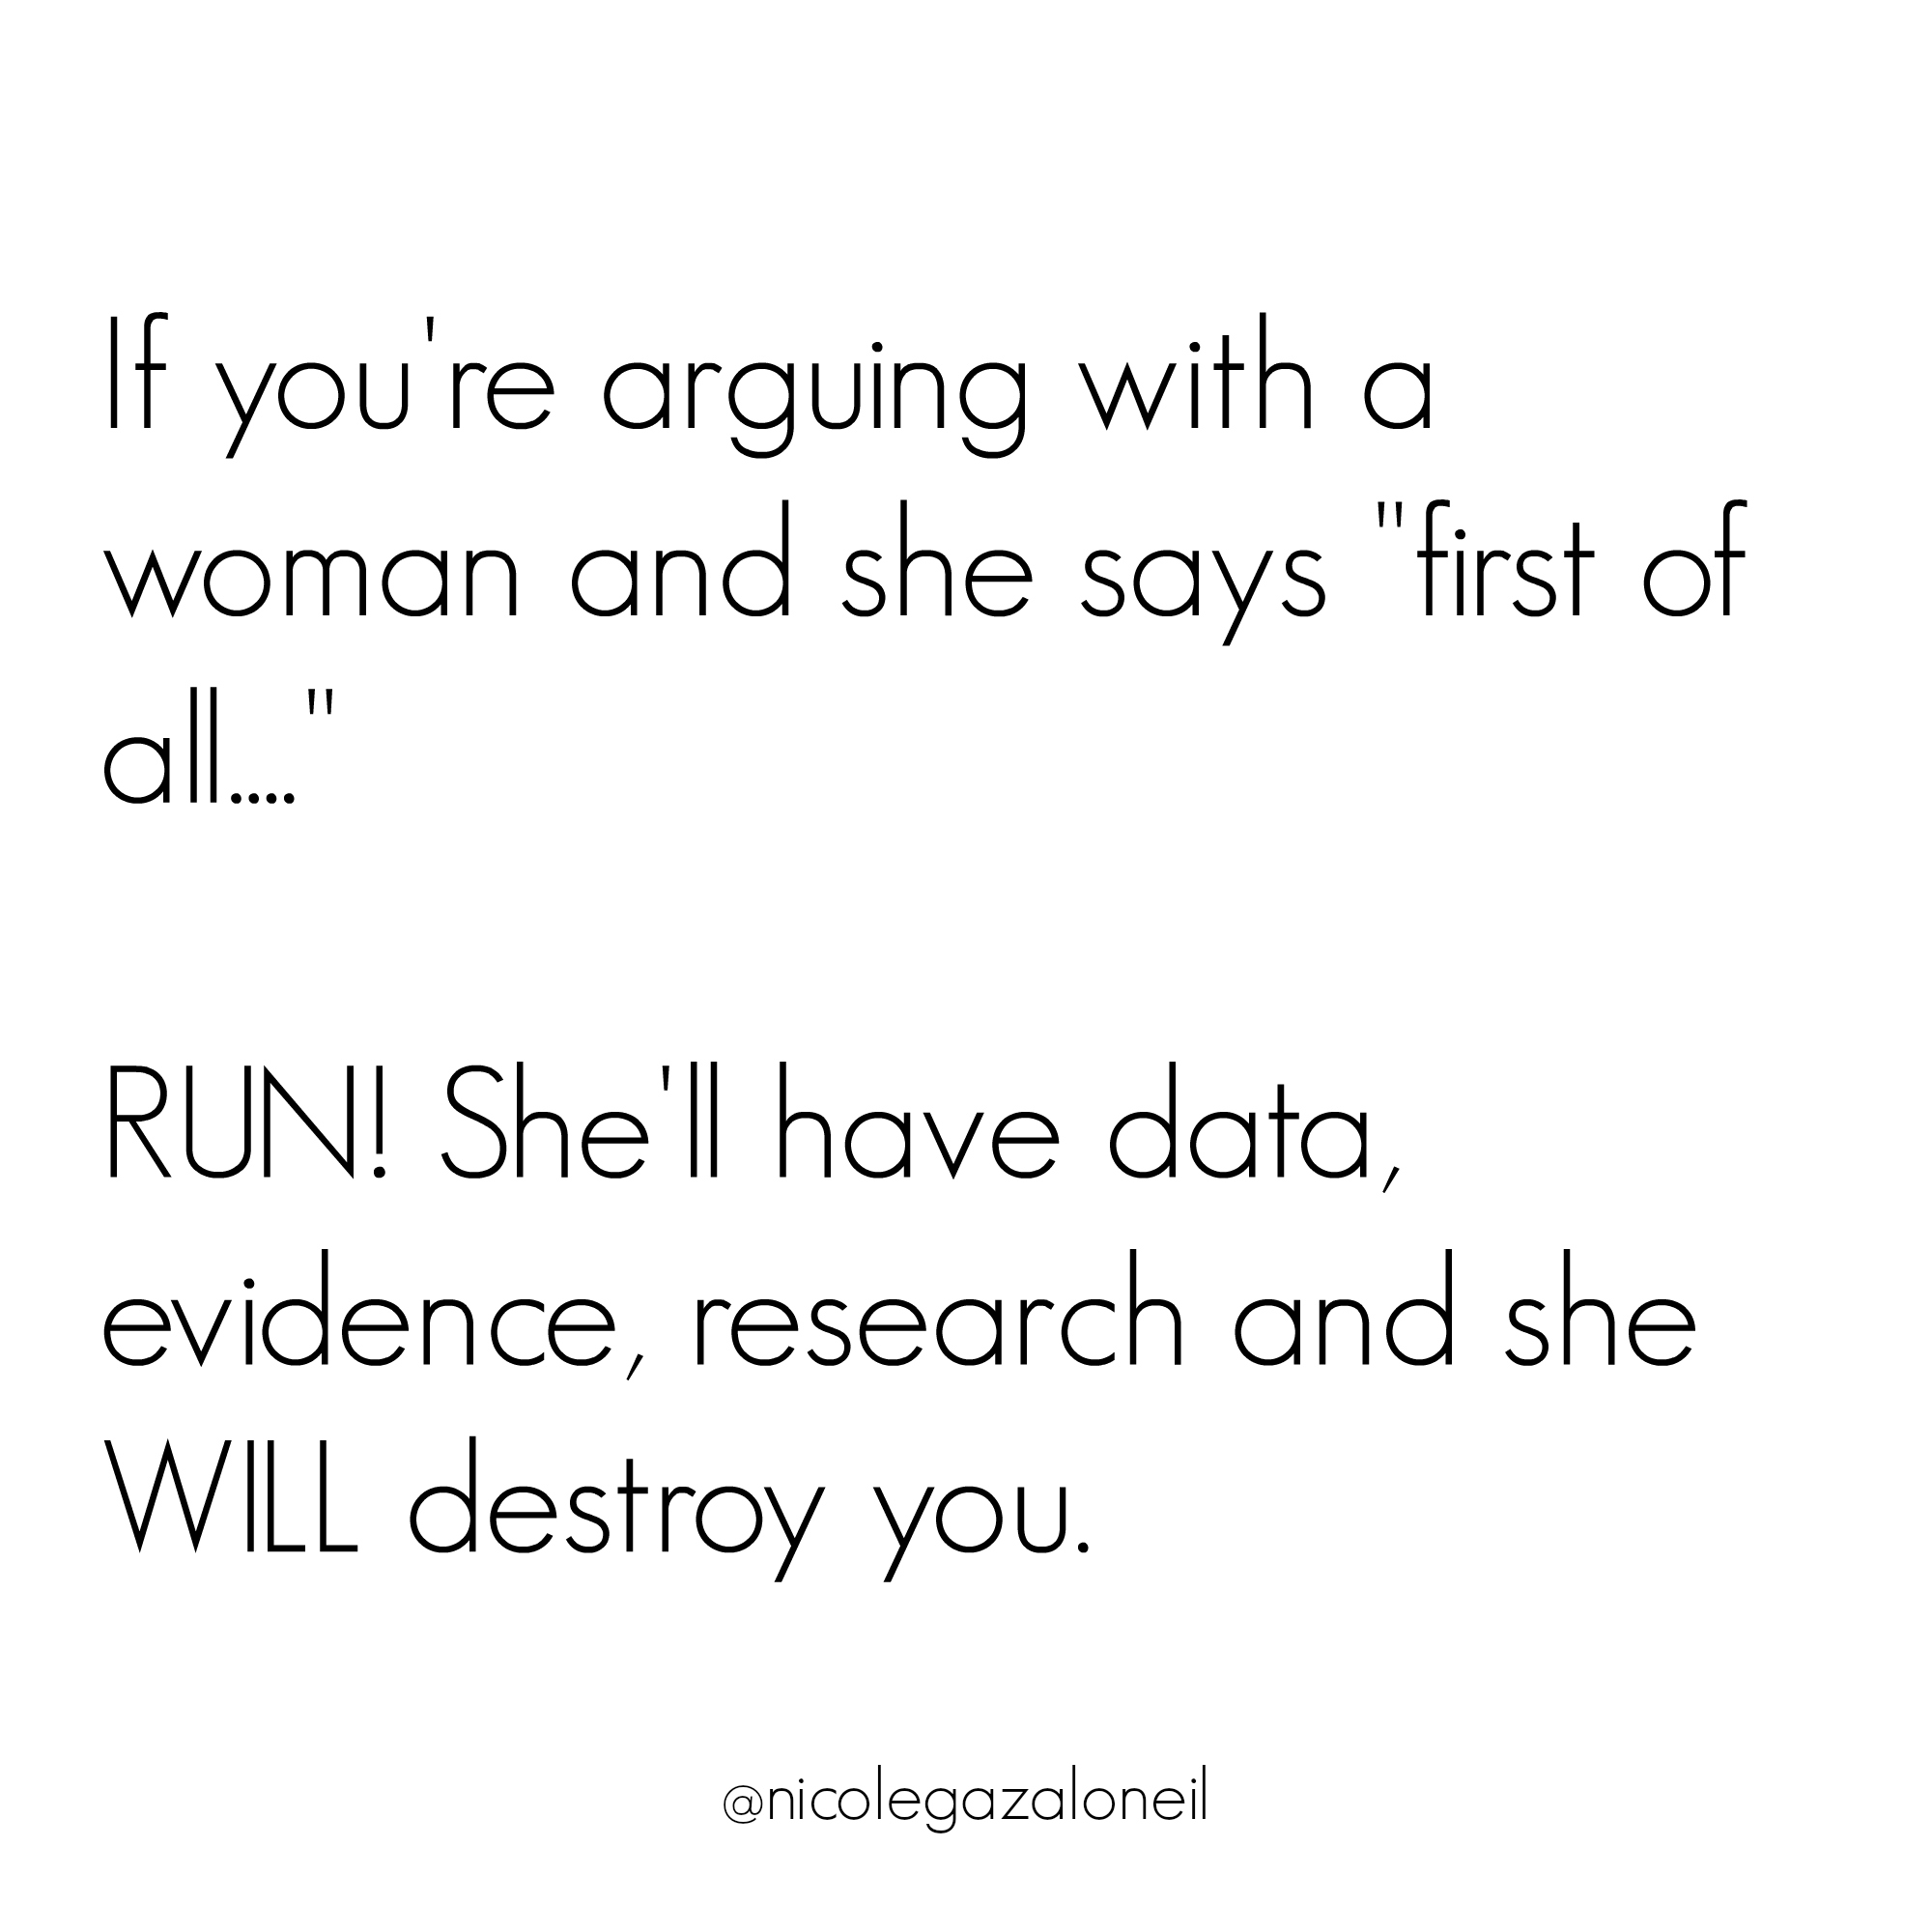 If you're arguing with a woman and she says first of all, run.jpg